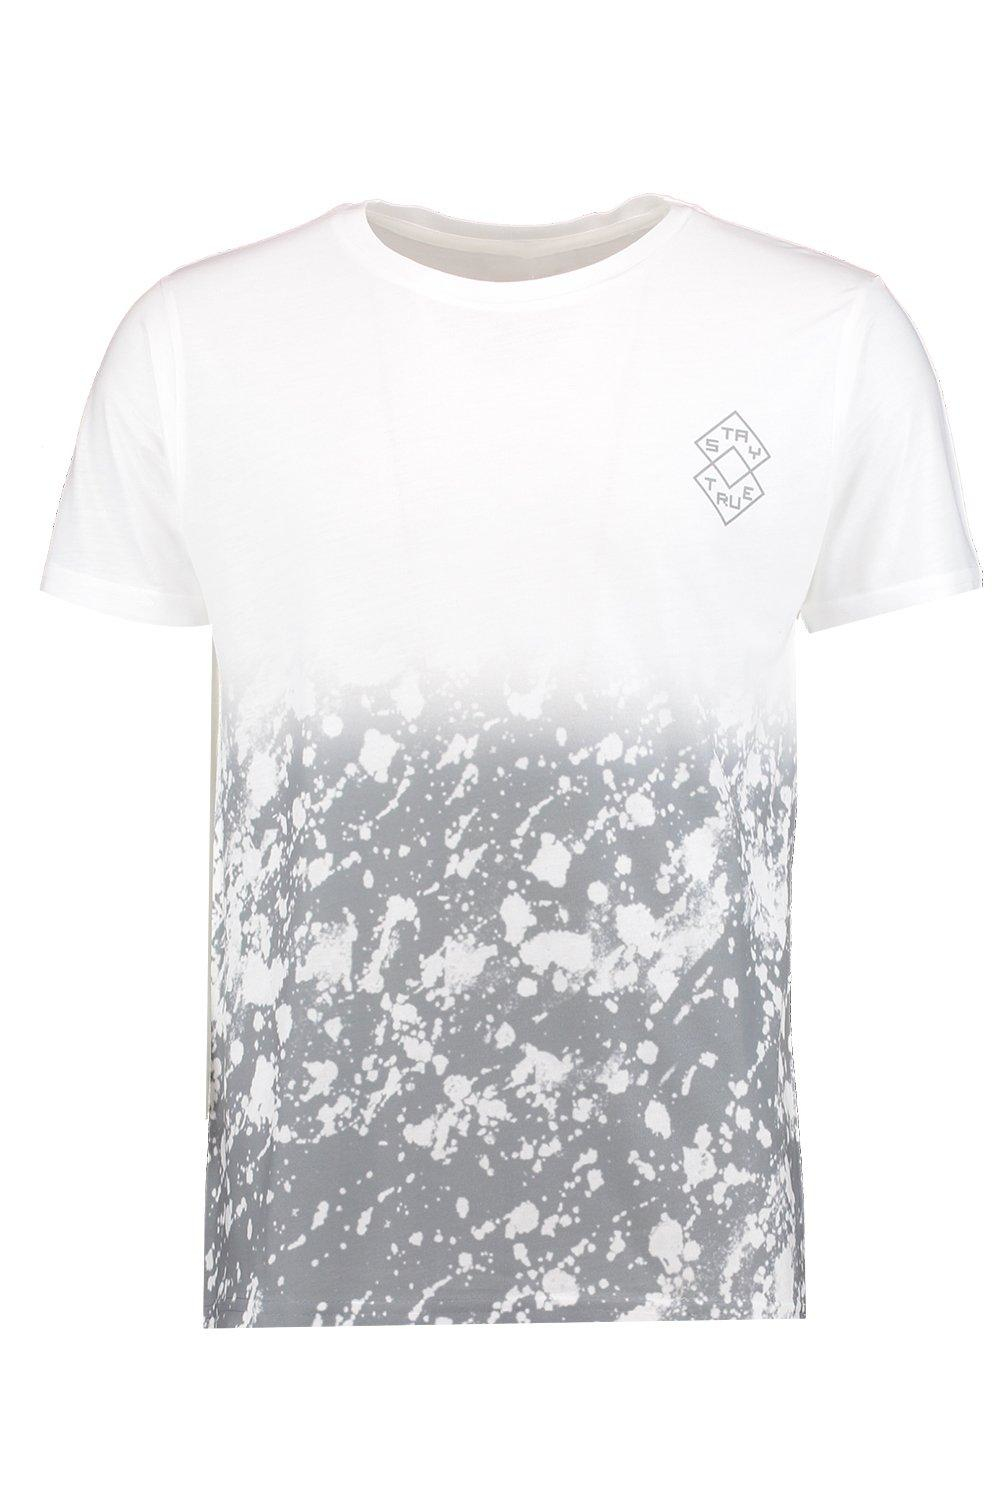 Boohoo faded splatter sublimation t shirt in black for men for Faded color t shirts